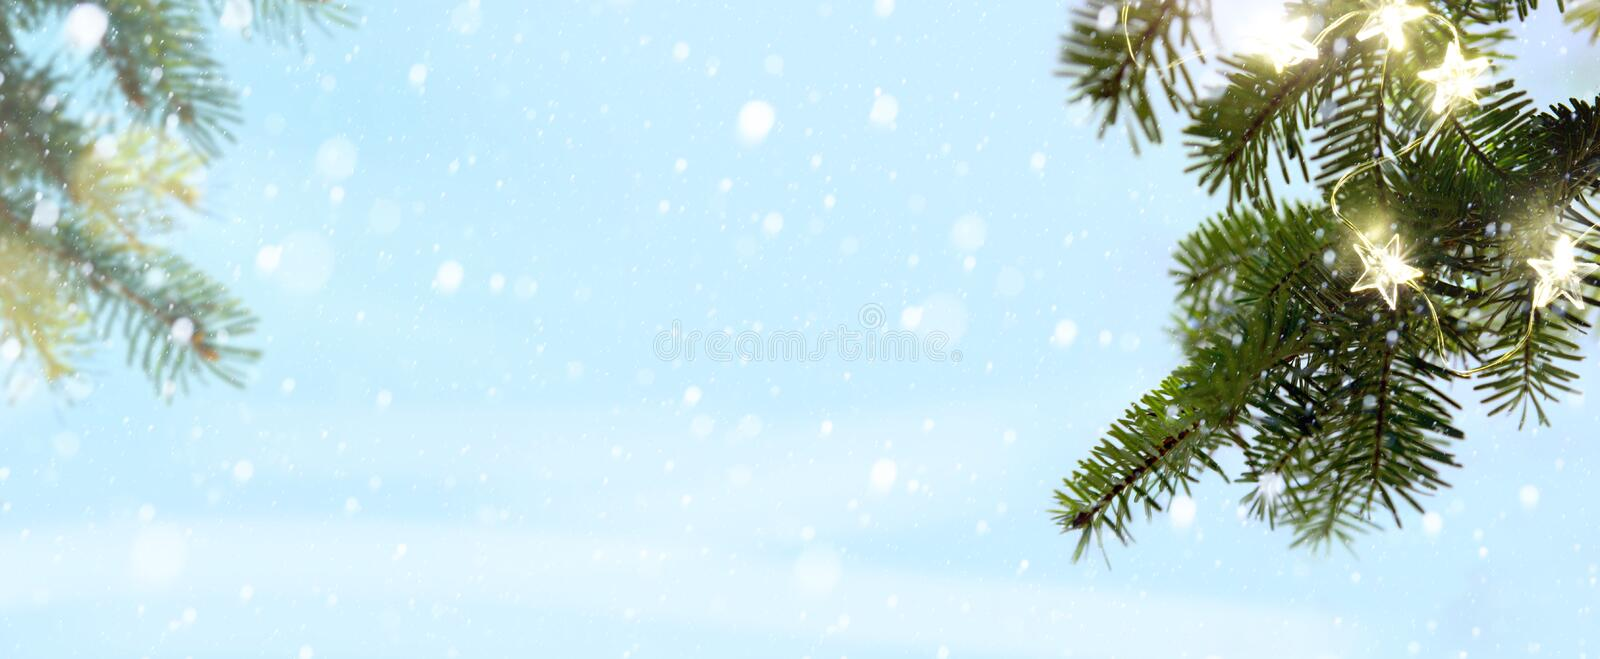 Merry Christmas - snow and fir tree branches with holidays light royalty free stock image